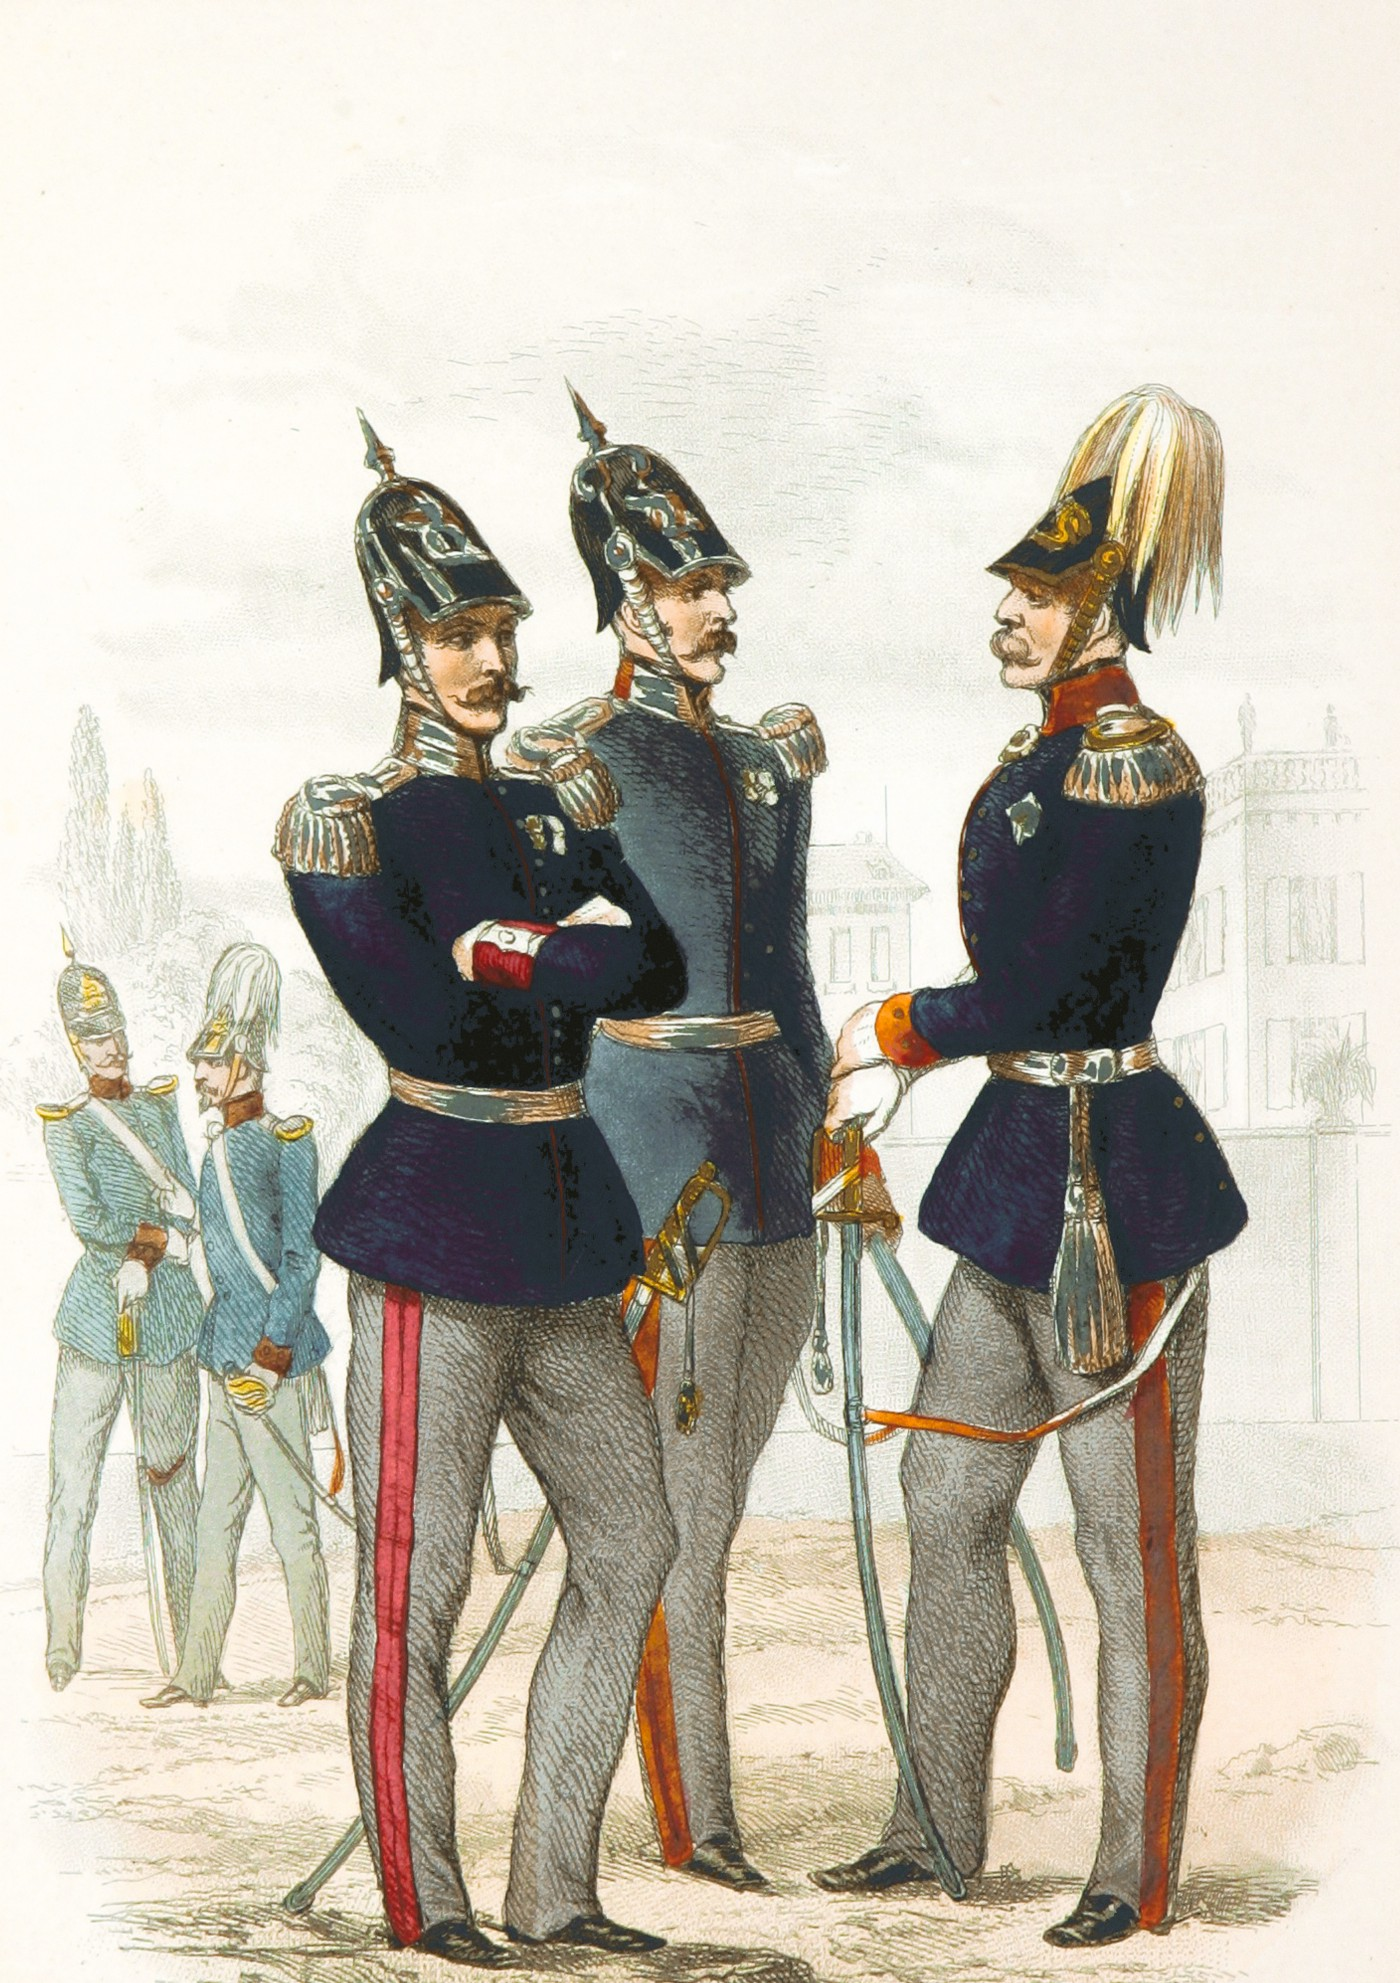 An old-fashioned engraving of ornately uniformed and mustached Baden soldiers with pointy helmets. Some also have plumes!